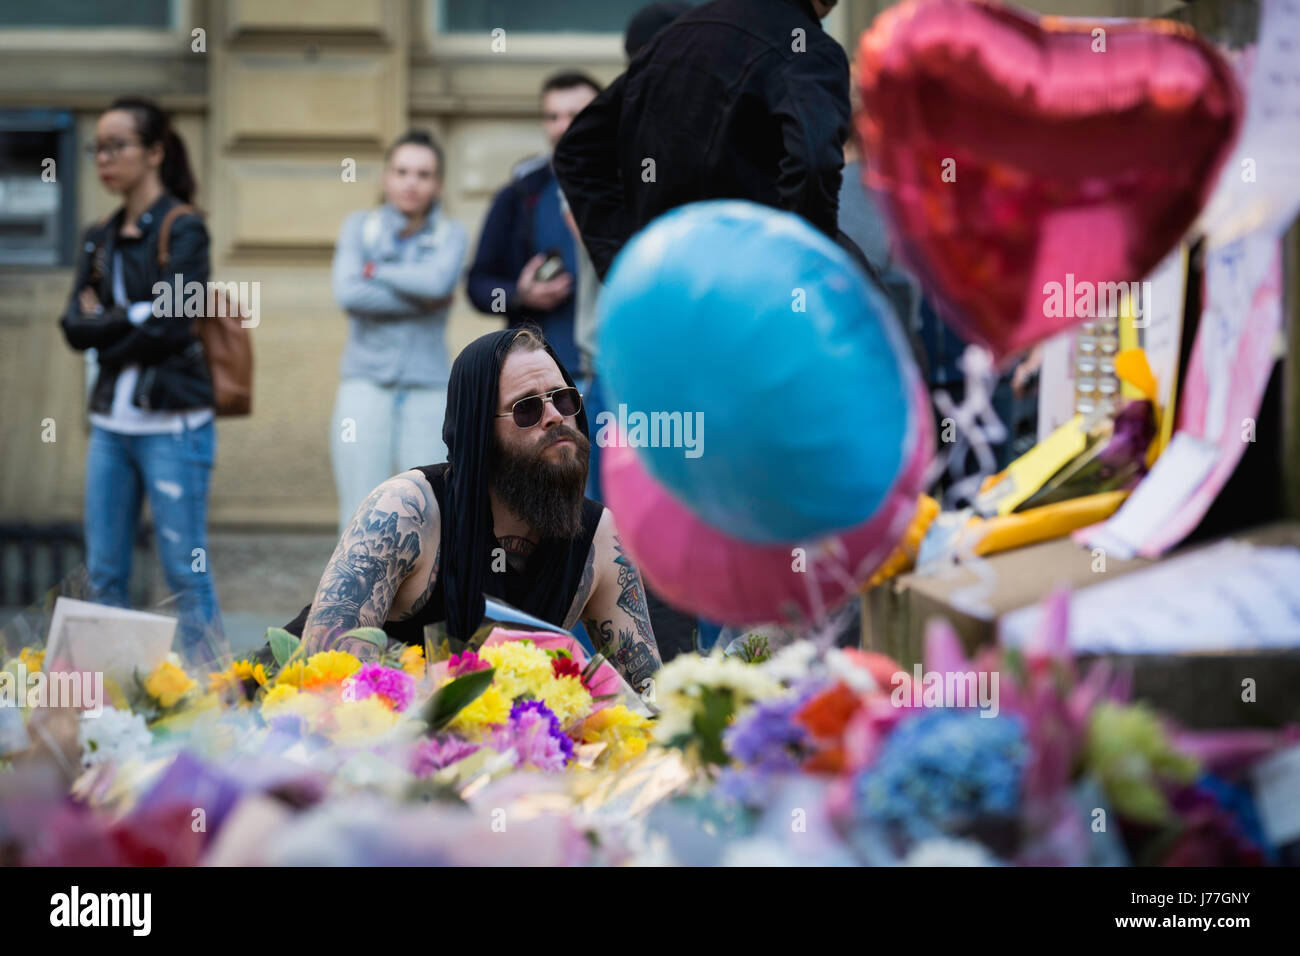 Manchester, UK. 23rd May, 2017. A man leaves flowers at St Anns Square, Manchester after a vigil was held in solidarity after an attack on Manchester Arena the night before which claimed 22 lives and injured 59. Credit: Andy Barton/Alamy Live News Stock Photo